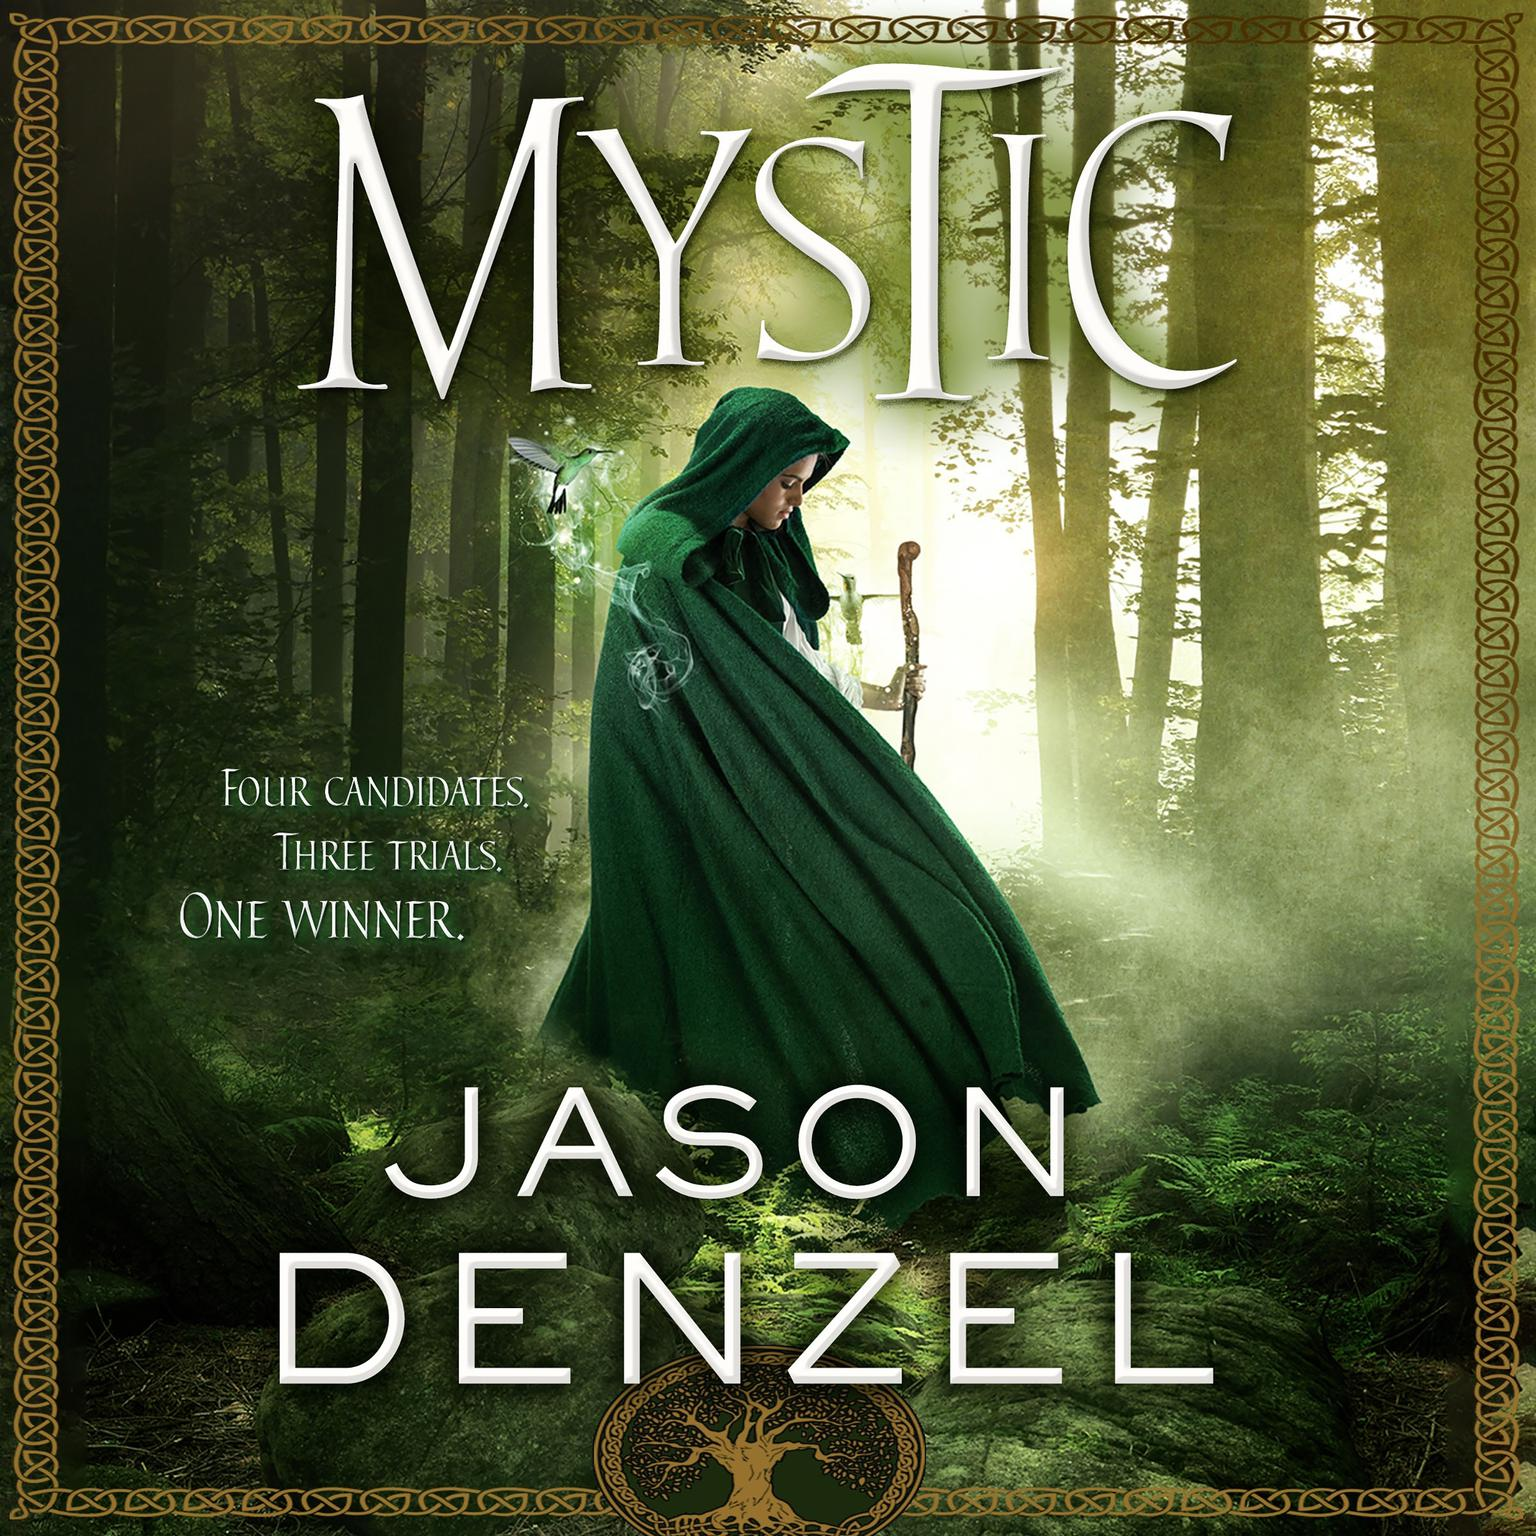 Printable Mystic: A Novel Audiobook Cover Art